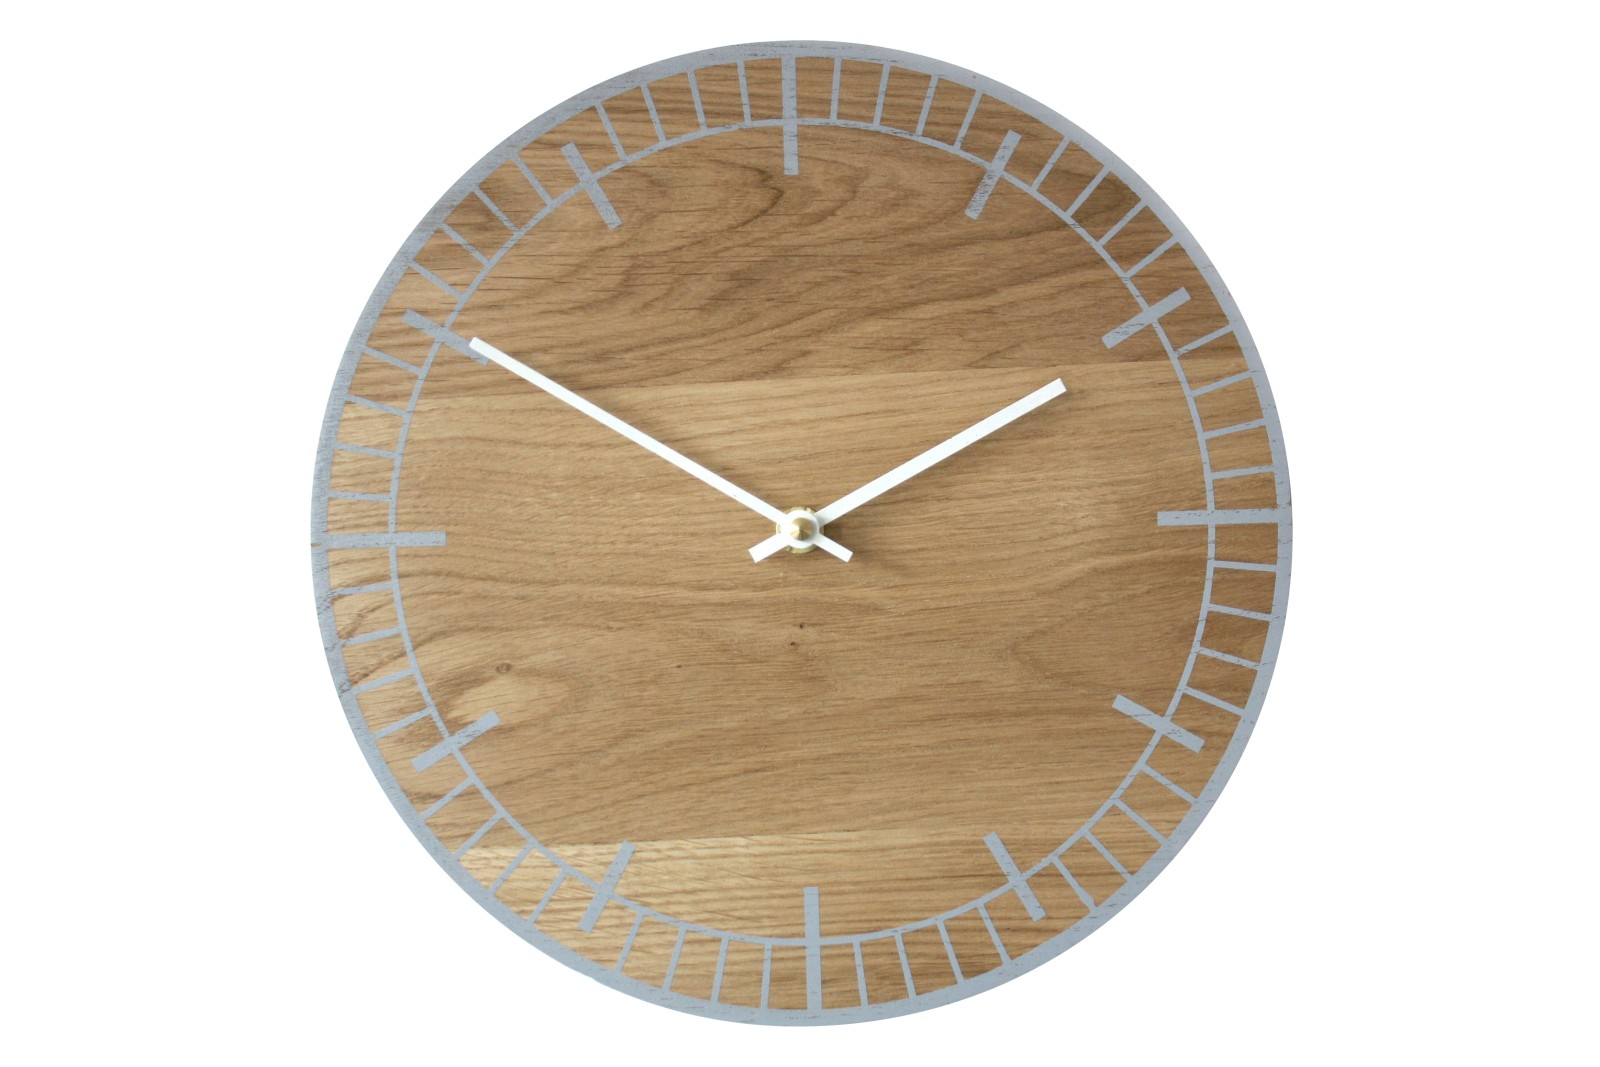 S2 Wall Clock Grey with White Hands